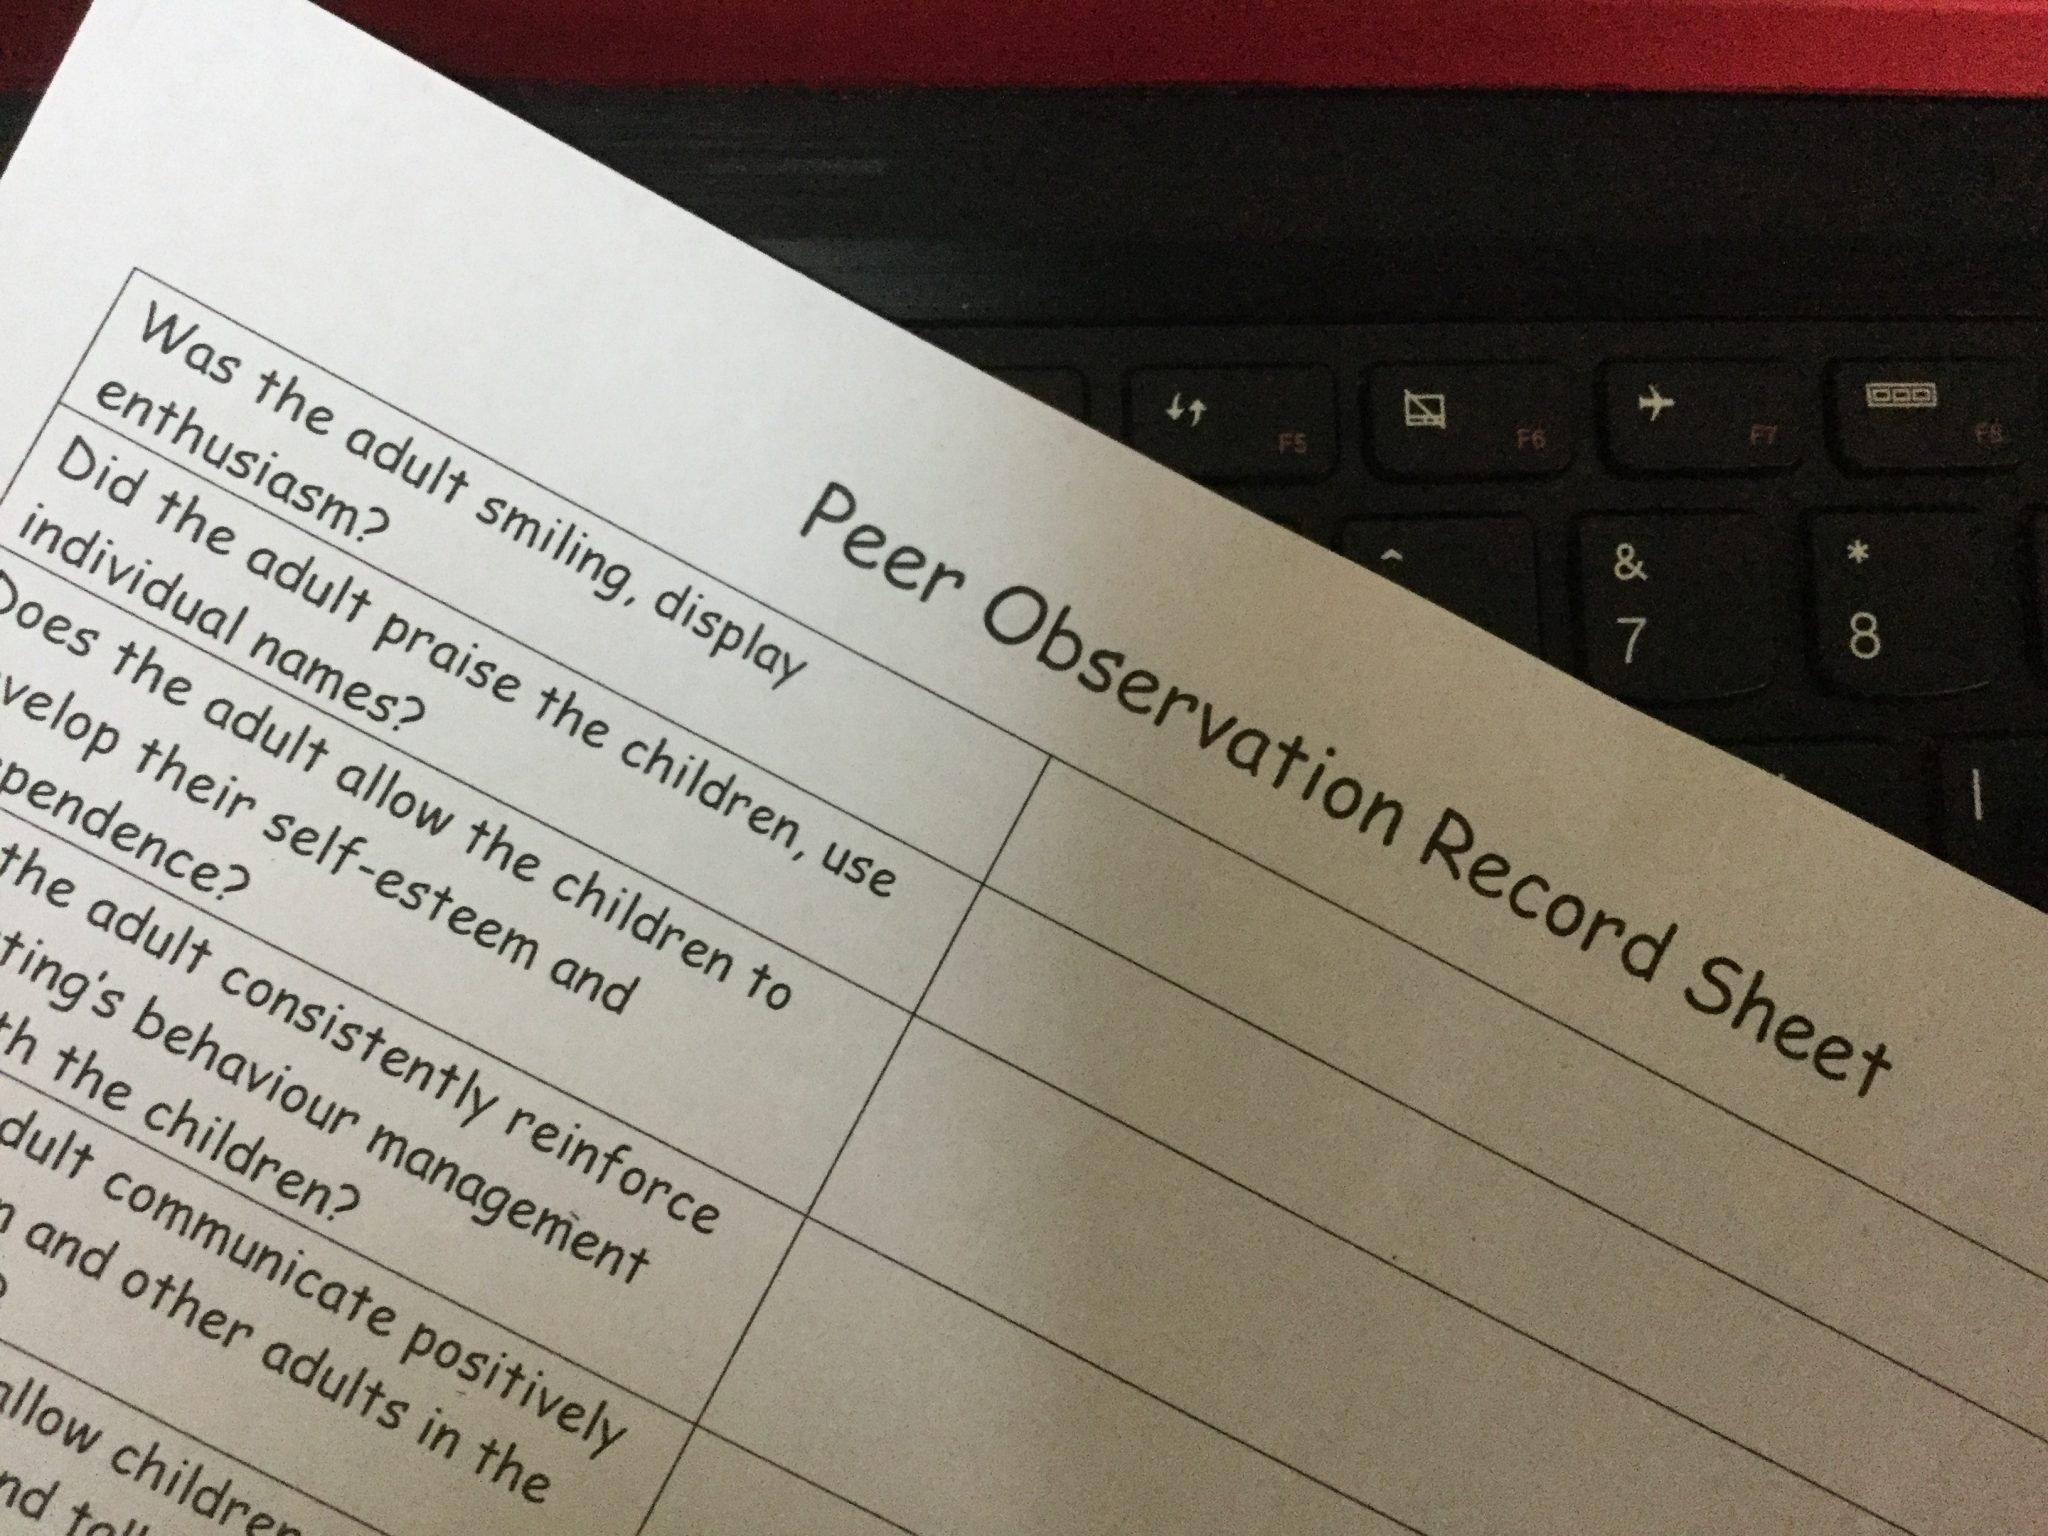 What are a peer to peer observations